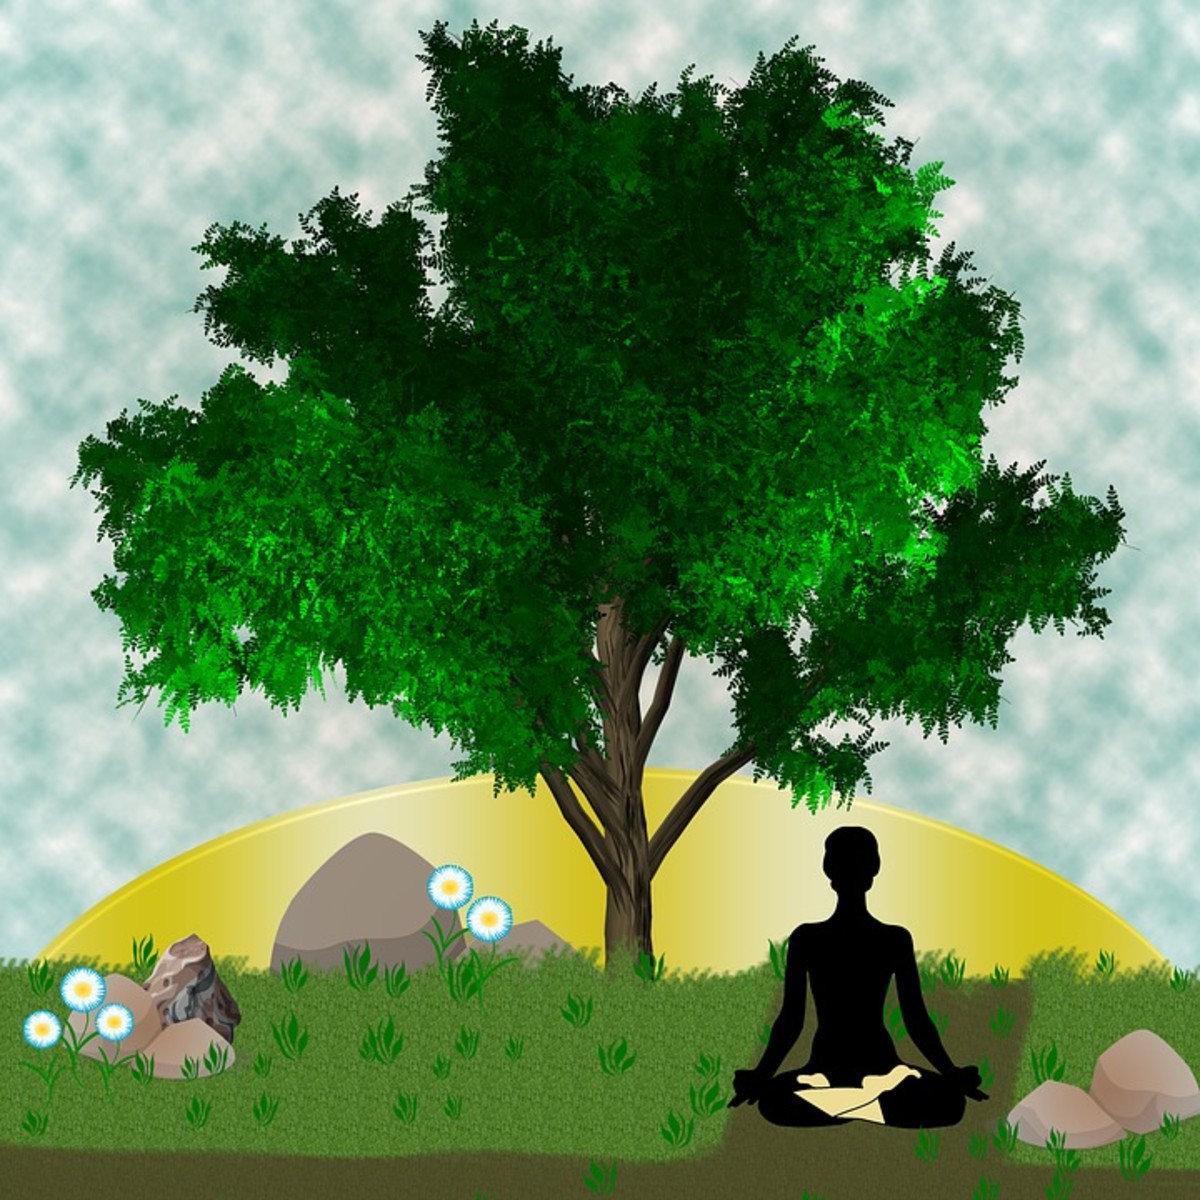 Yoga meditation may open a Christian's mind to an alternate power source.